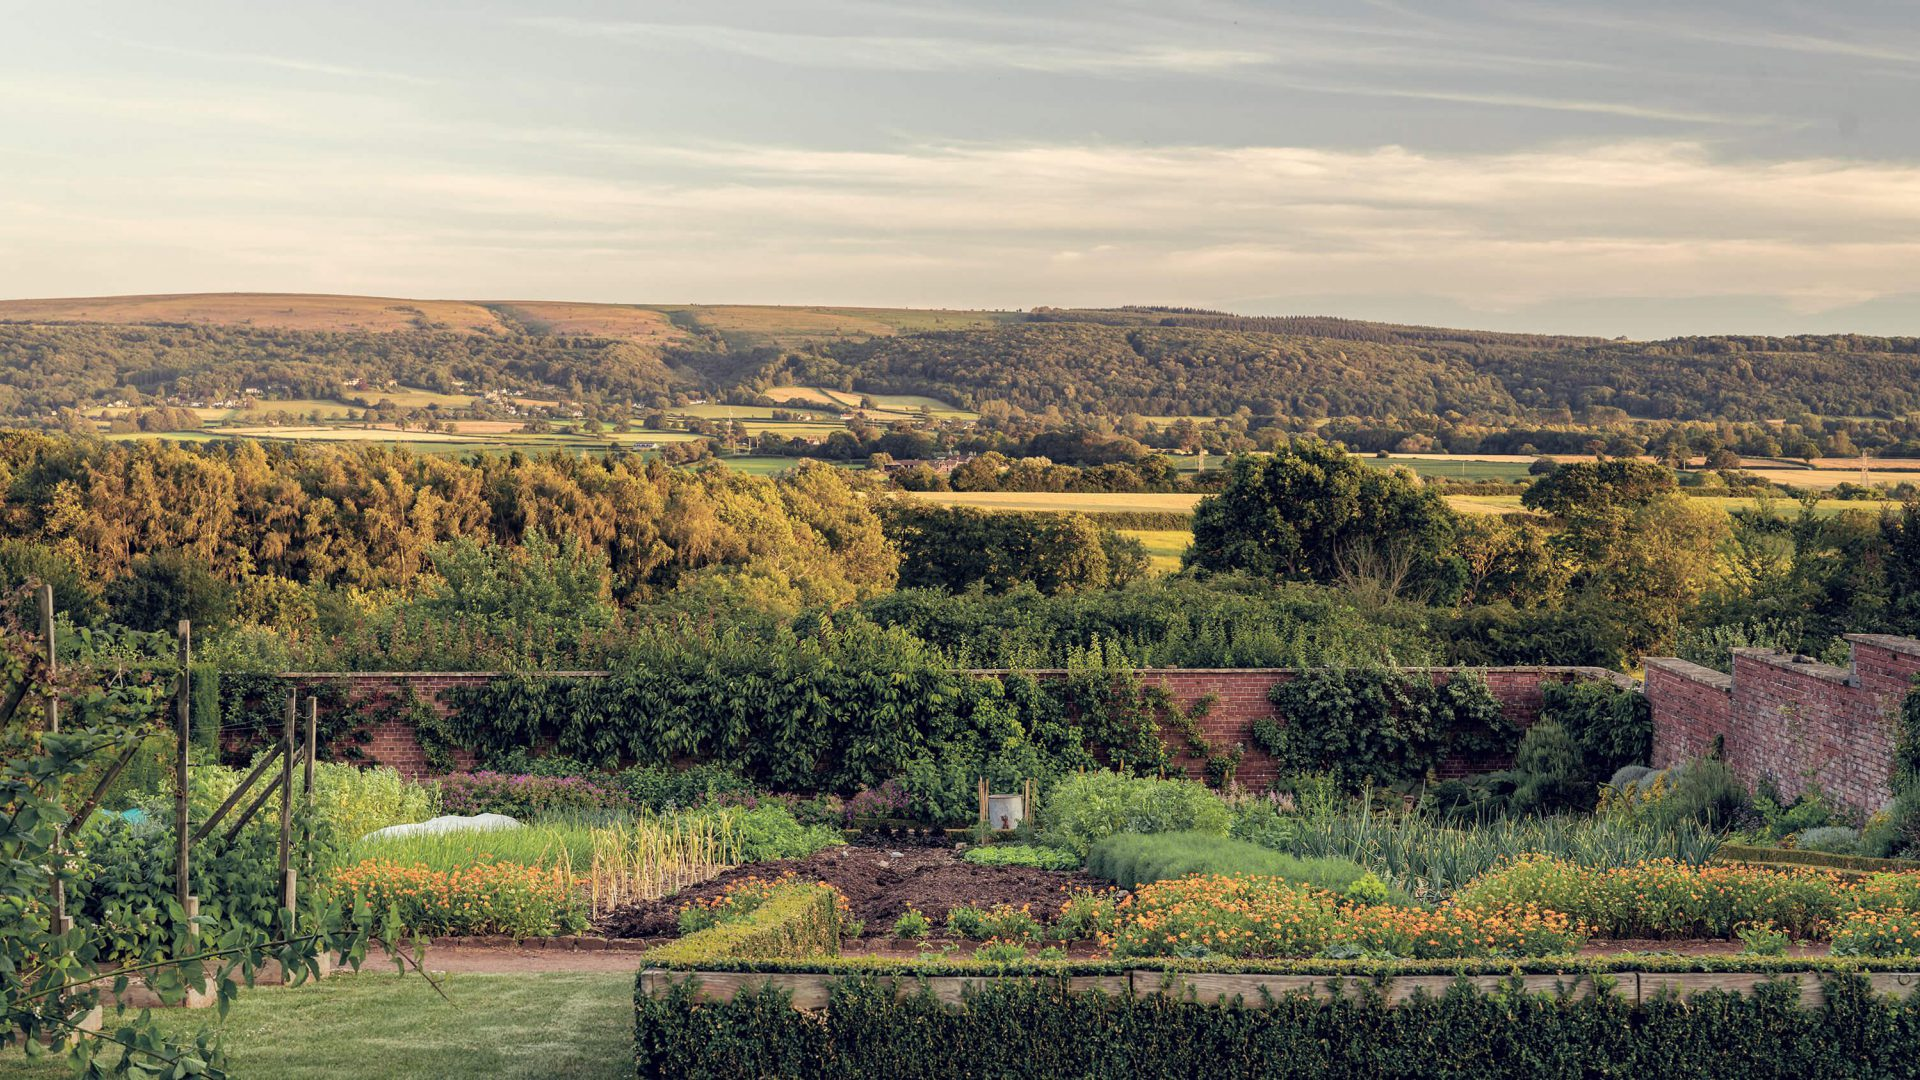 Walled Garden Views of the Mendips